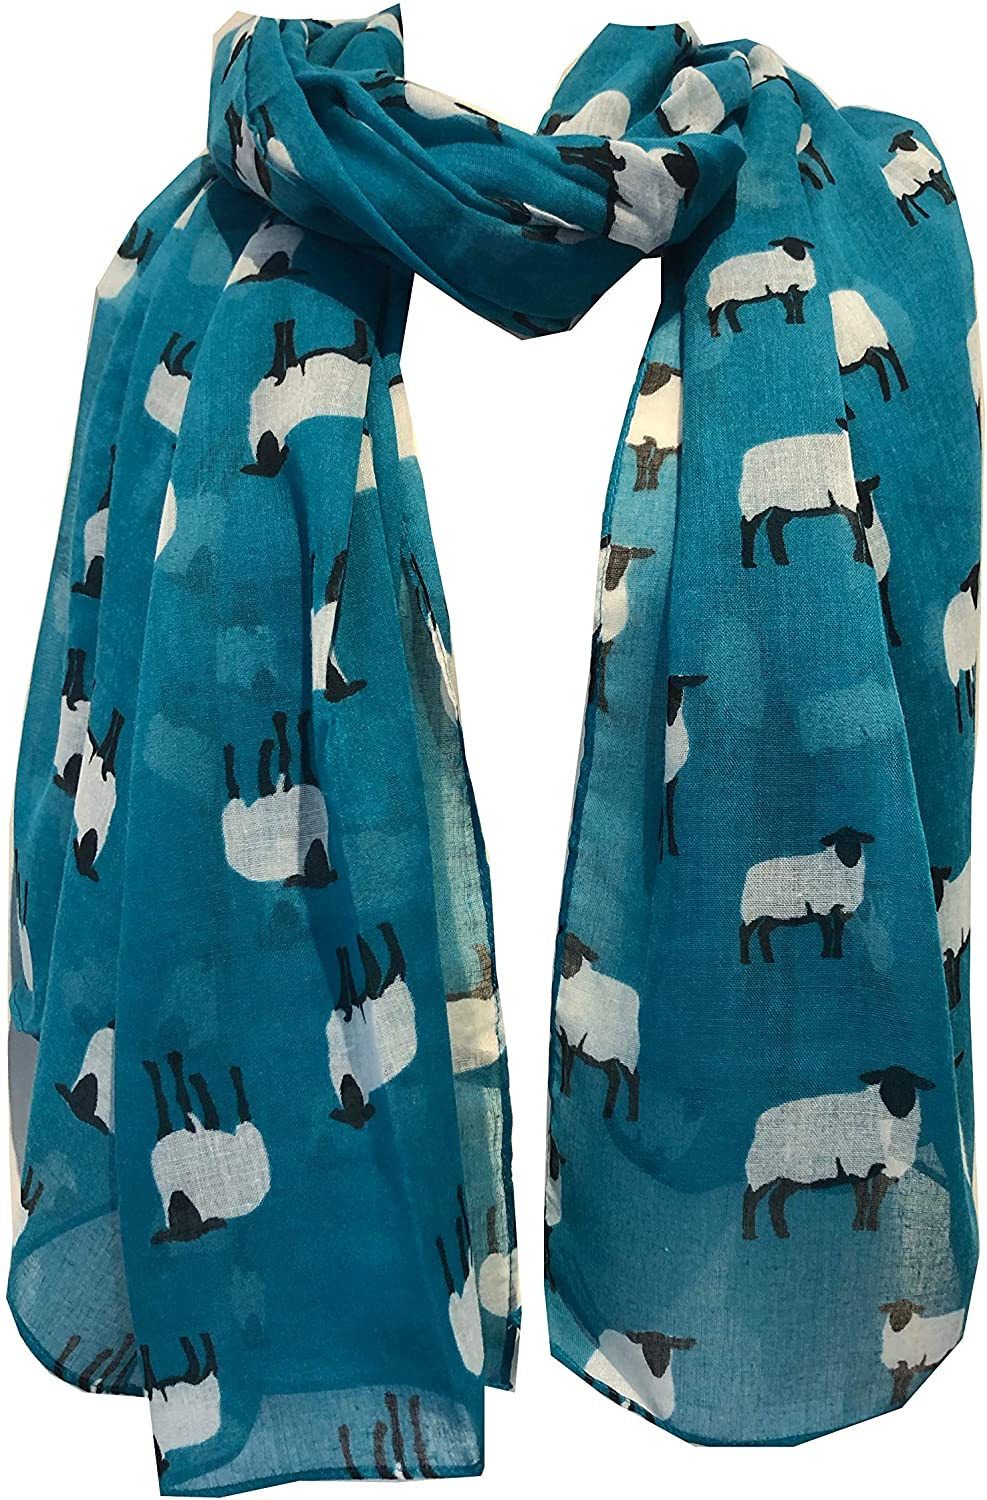 Pamper Yourself Now Green Sheep Design Long Scarf, Great for Presents/Gifts for Sheep Lovers.